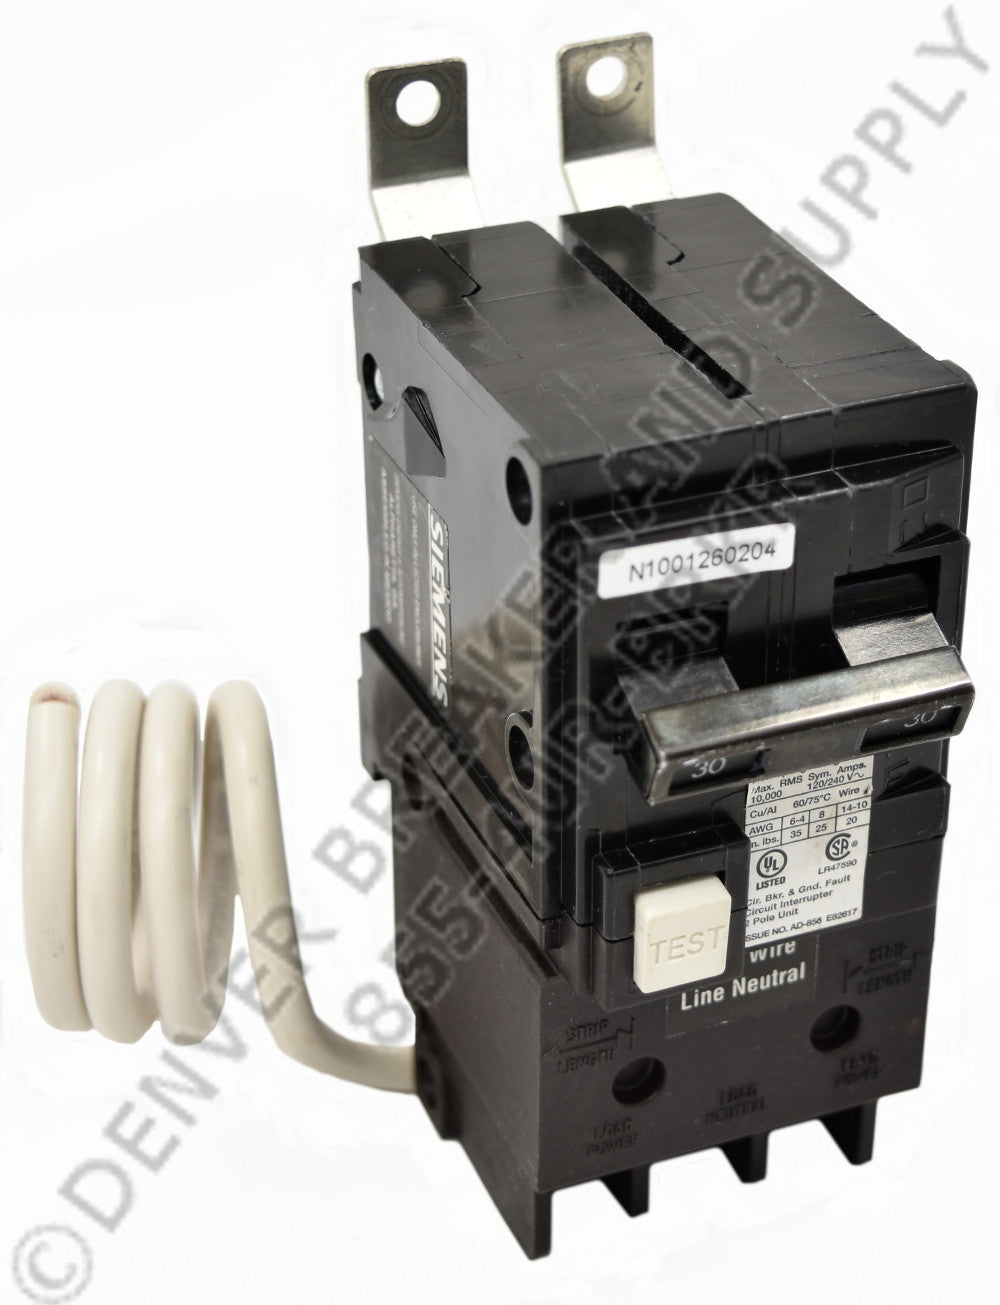 Siemens BF230 Circuit Breakers